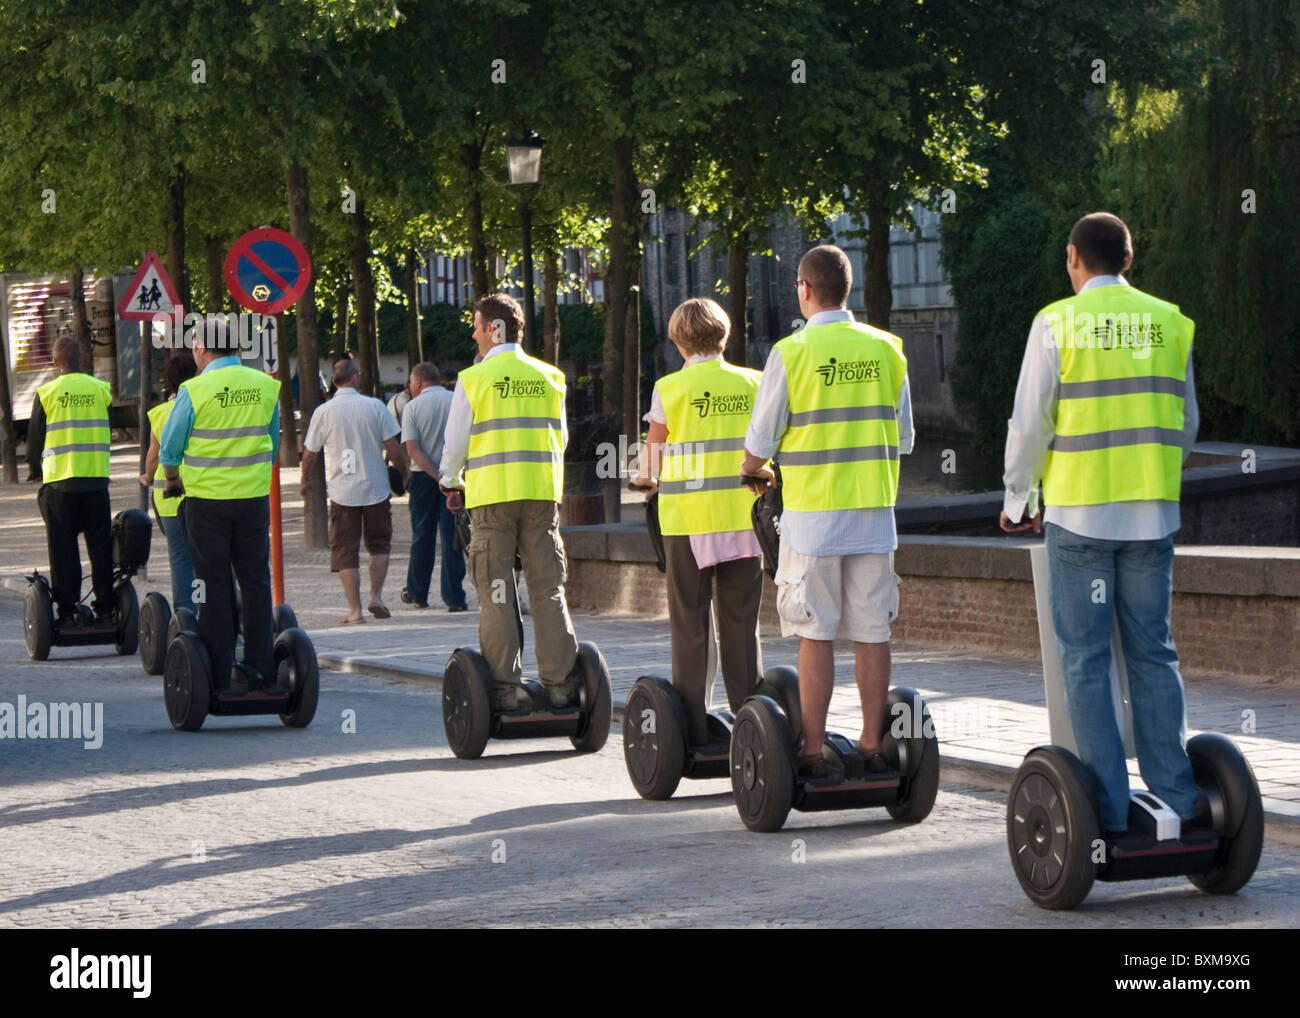 segway drivers in Brugge - Stock Image